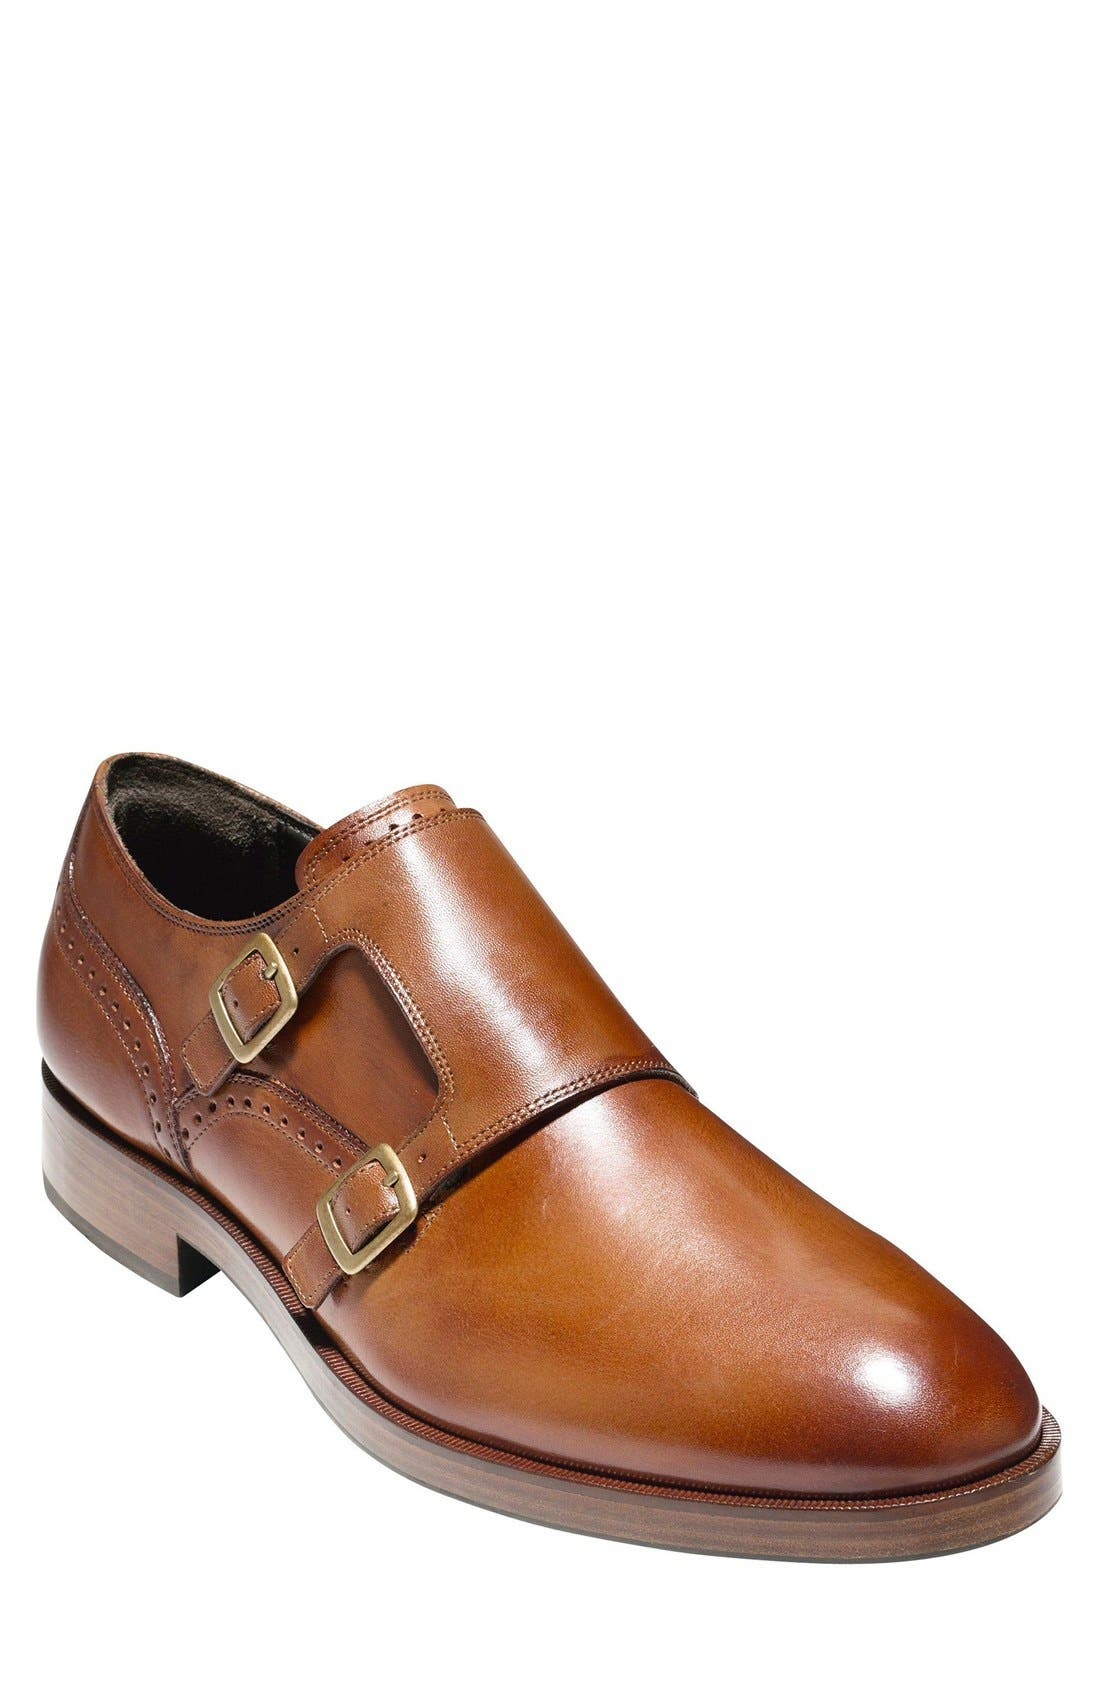 Donaldo Navy Men's Monk Strap Shoes